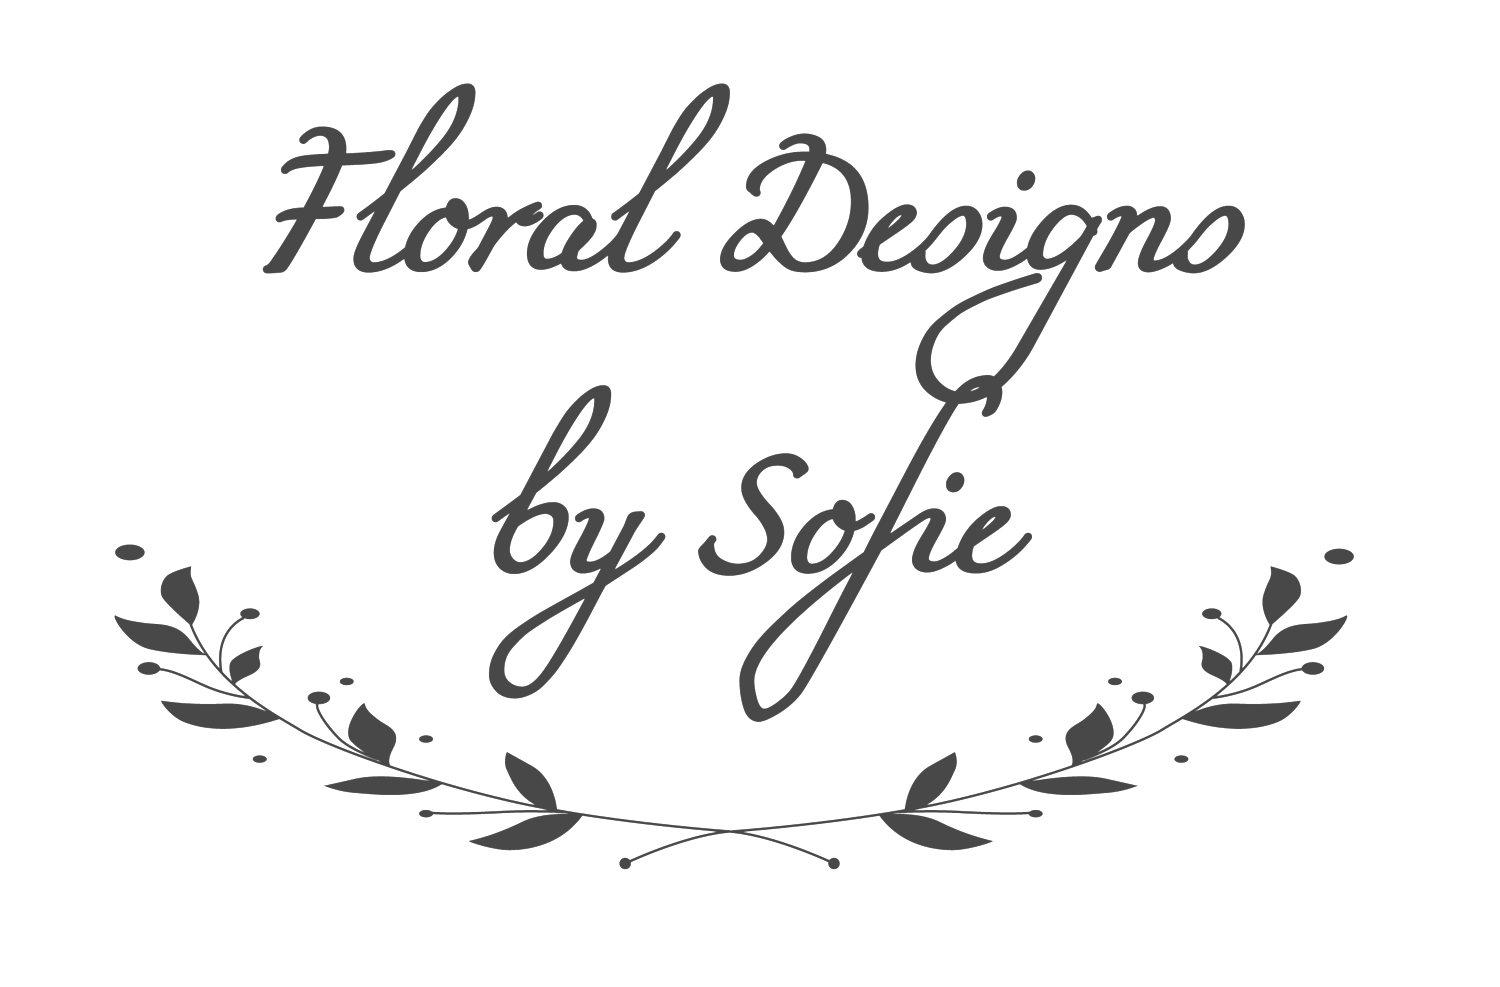 Floral Designs by Sofie